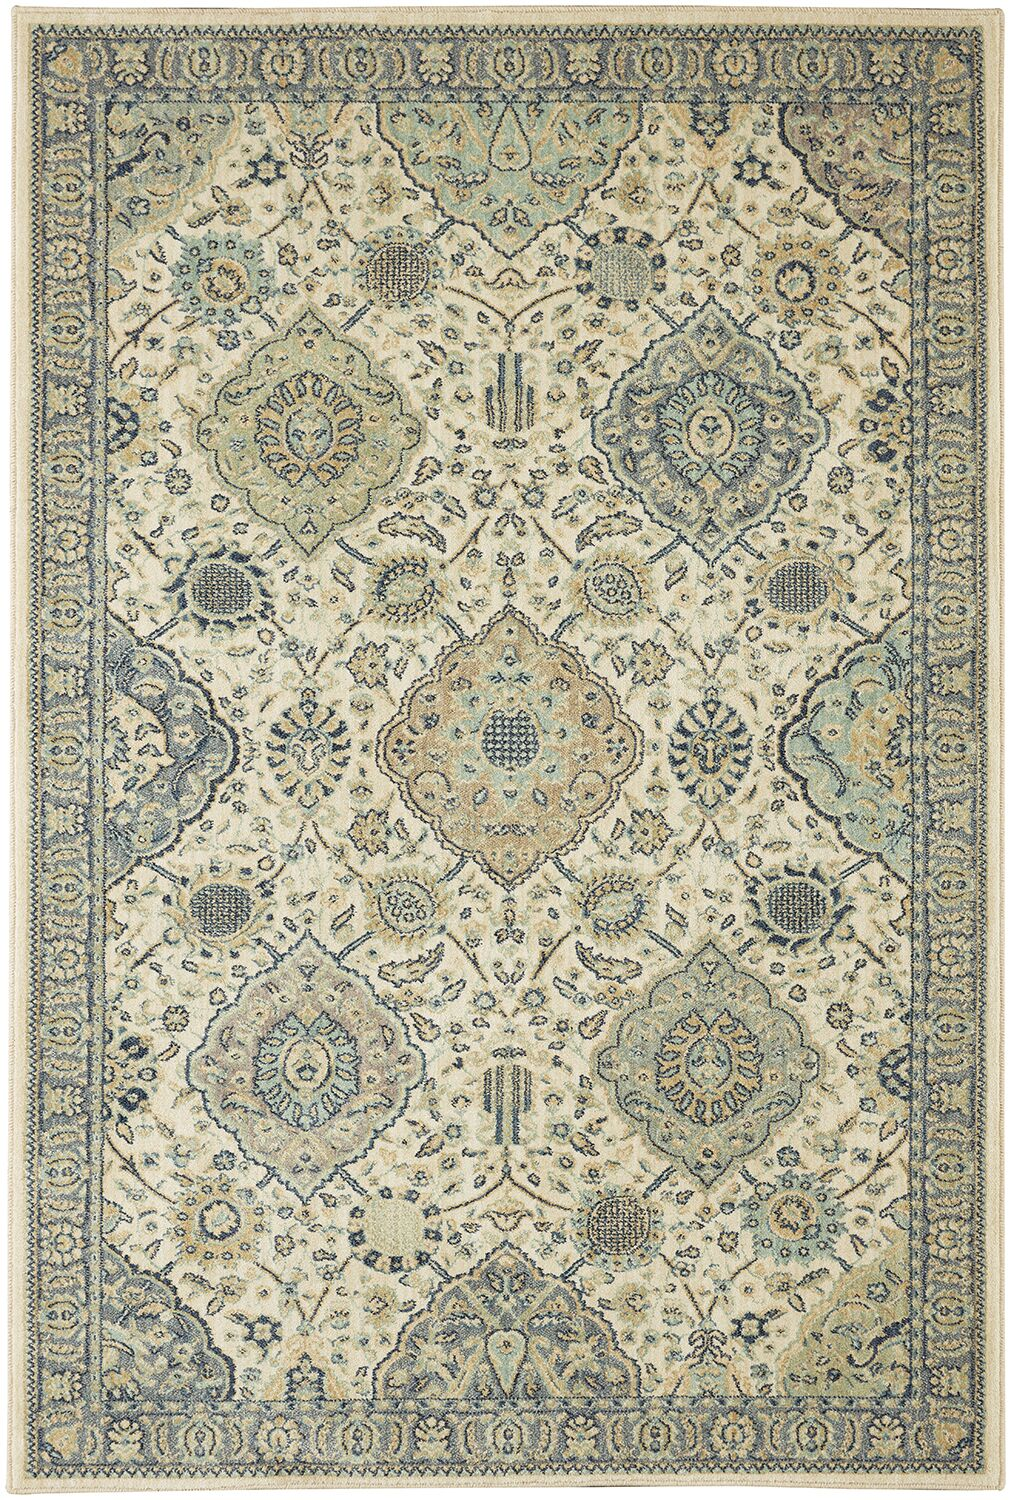 Lakemont Beige/Blue Area Rug Rug Size: Rectangle 8' x 10'